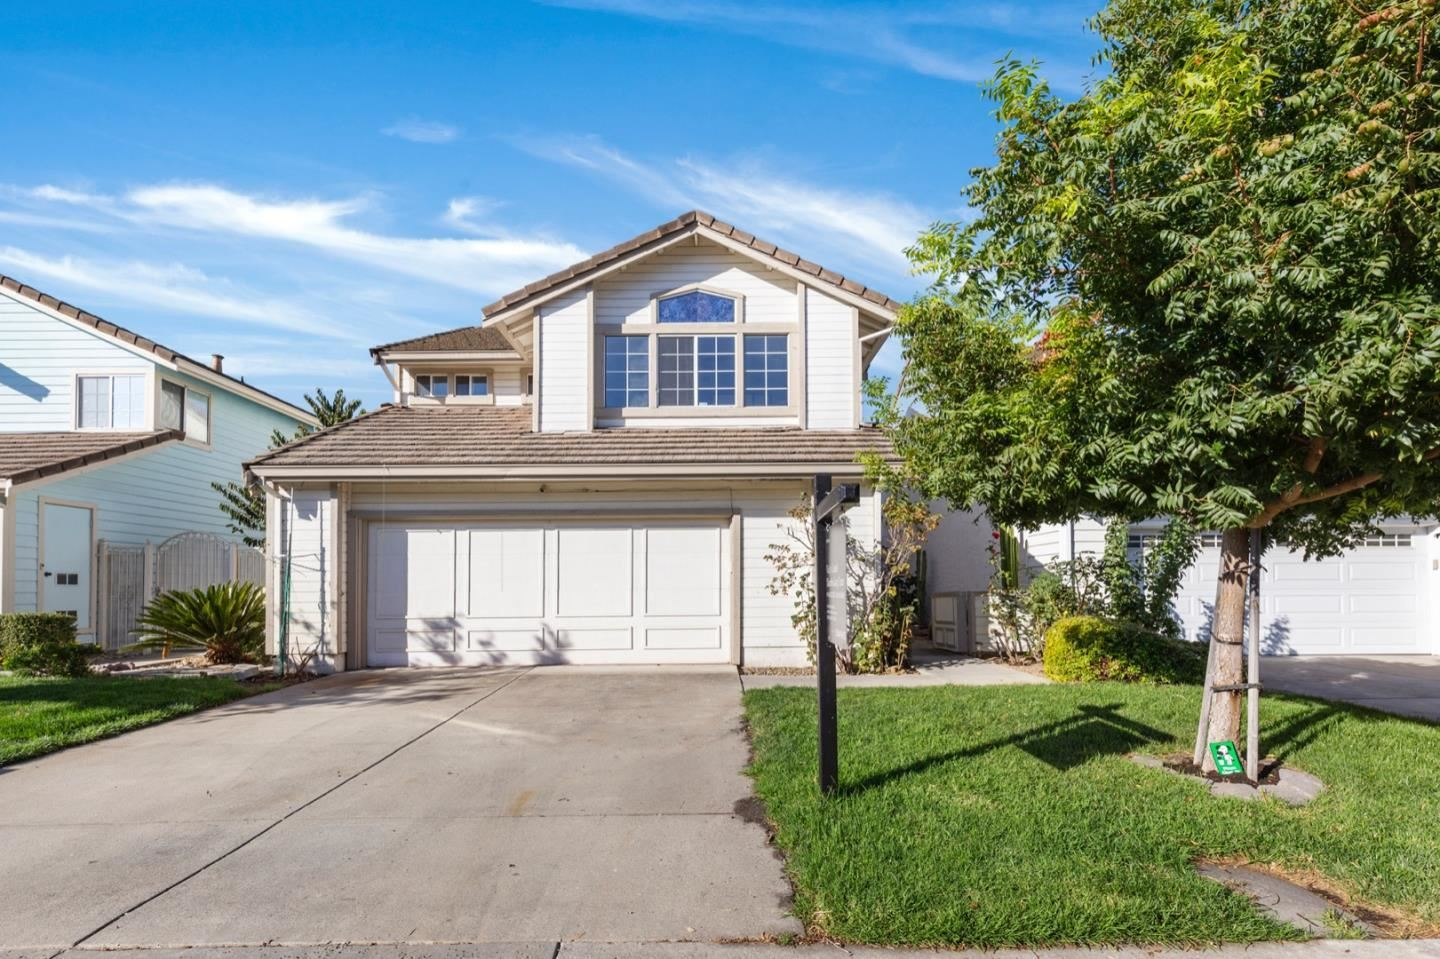 Photo for 281 Moretti LN, MILPITAS, CA 95035 (MLS # ML81820037)